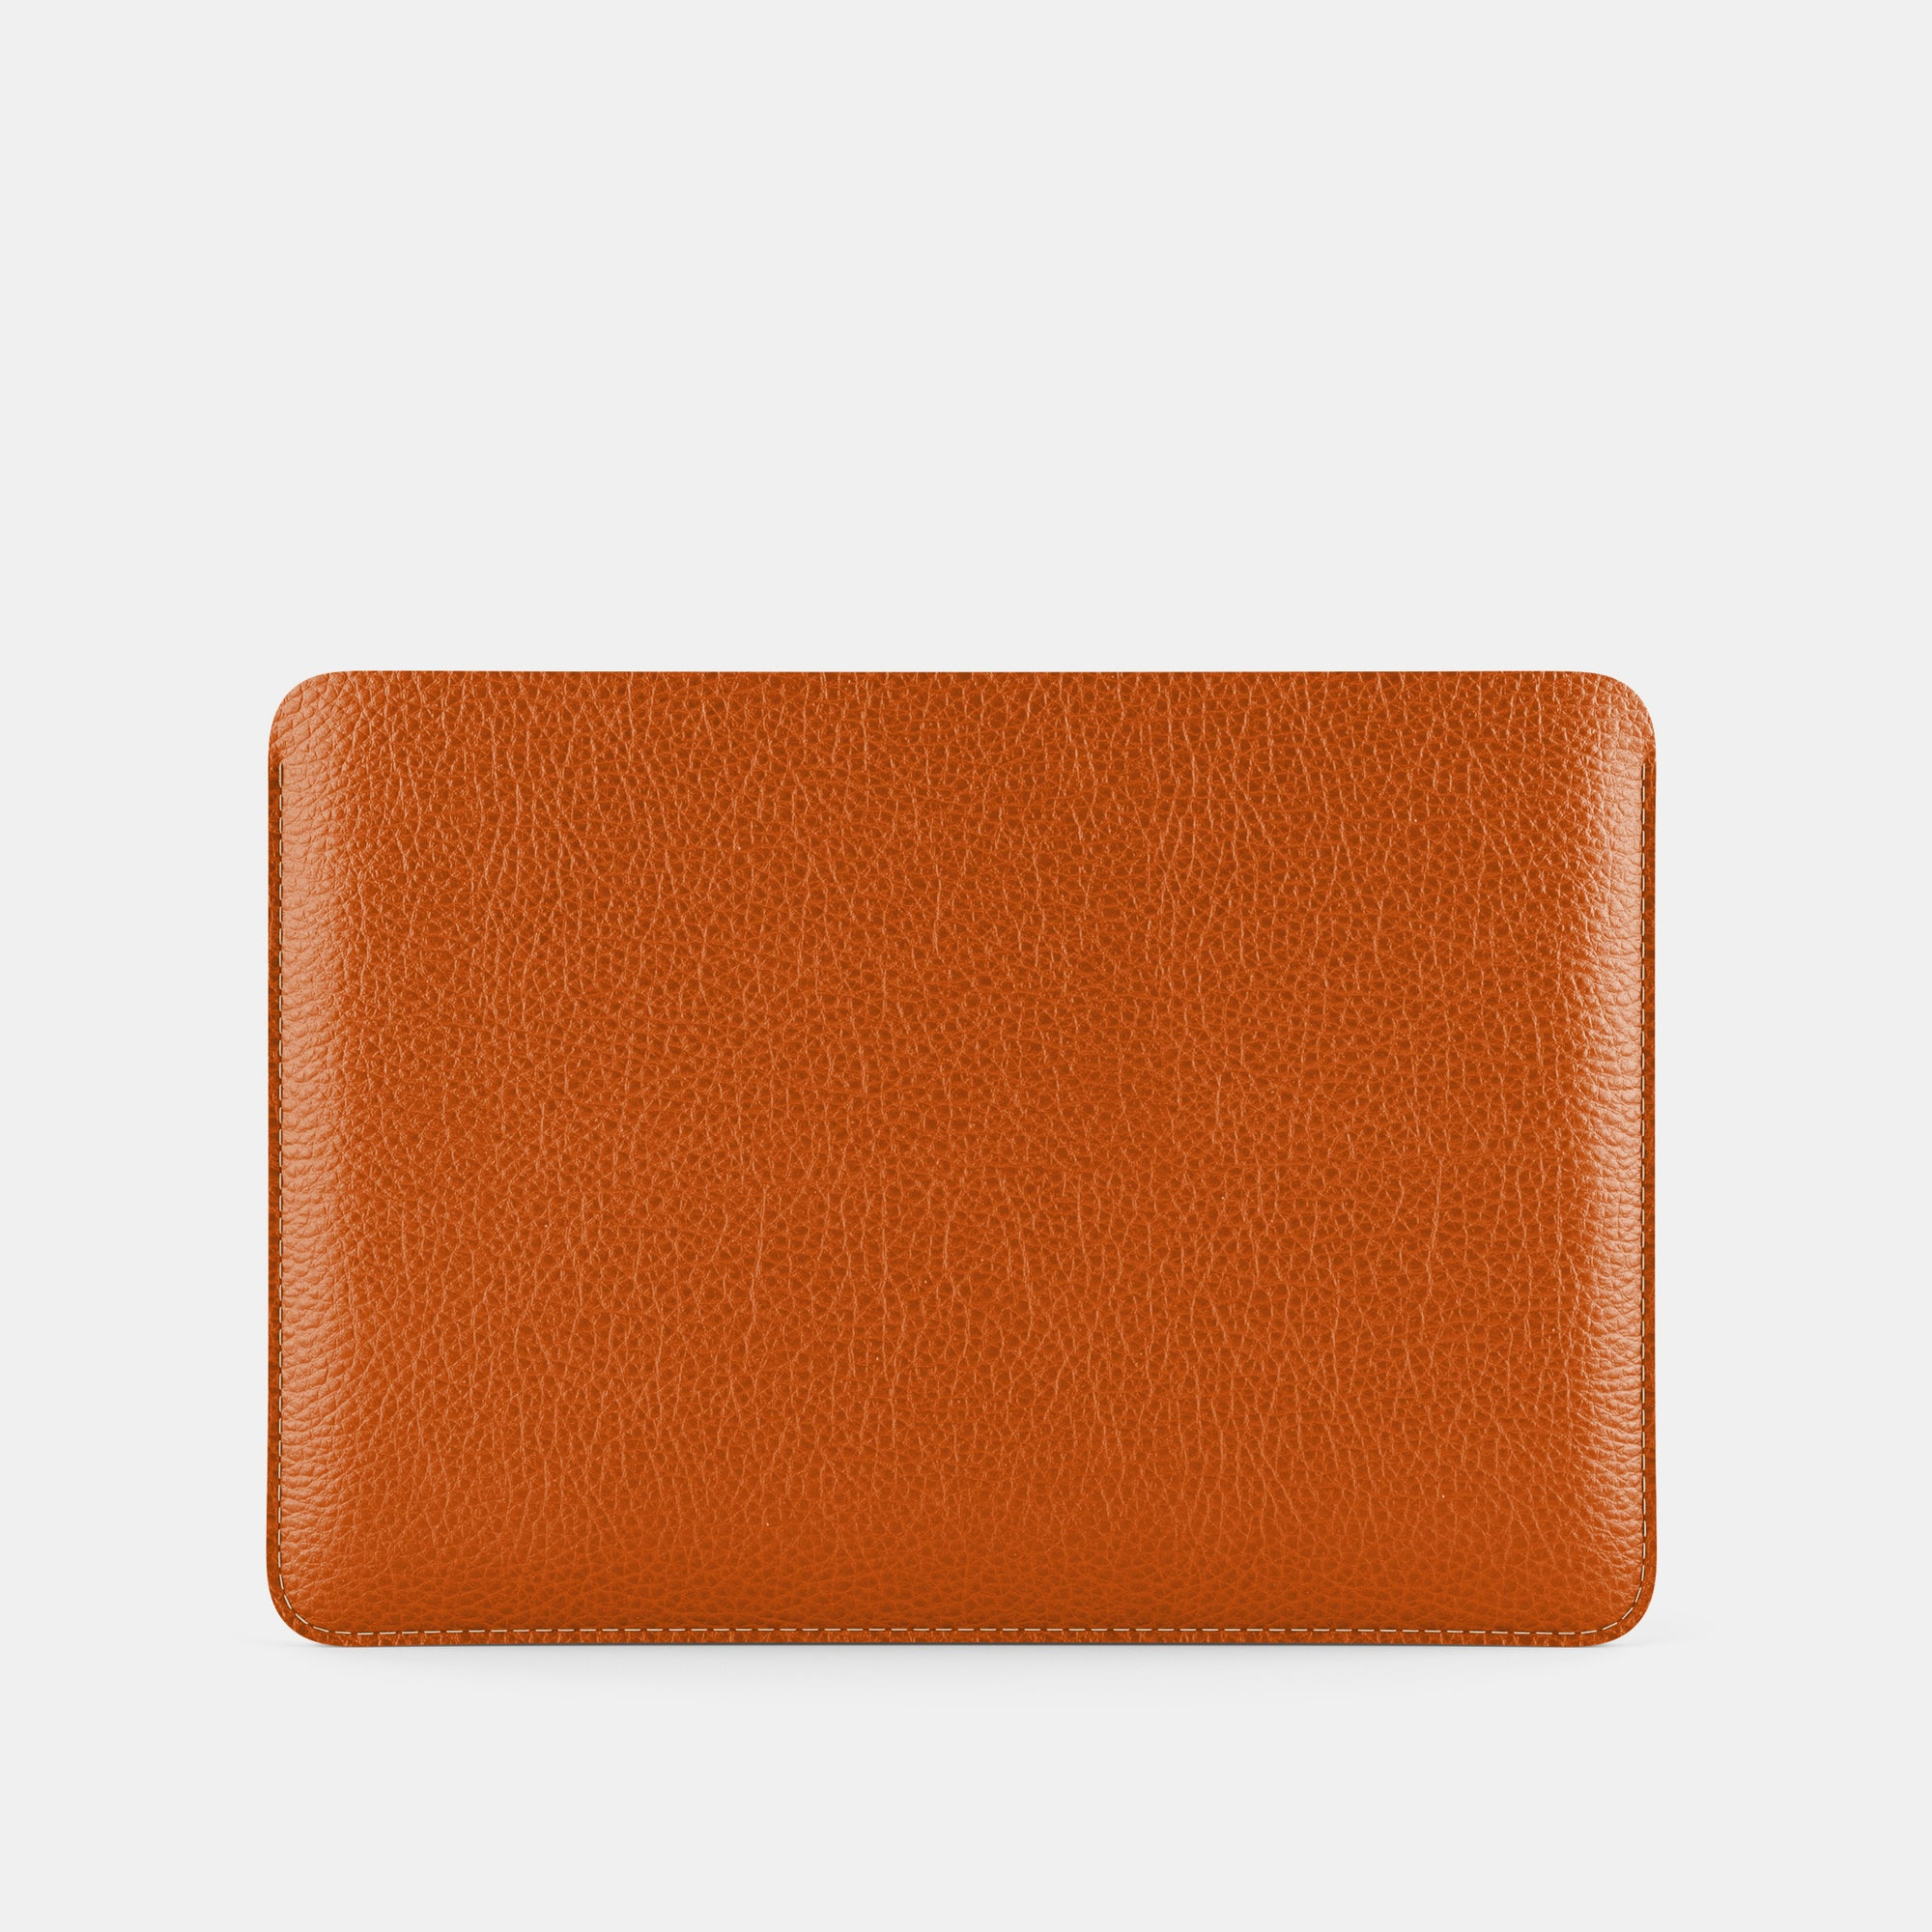 iPad Sleeve - RYAN London